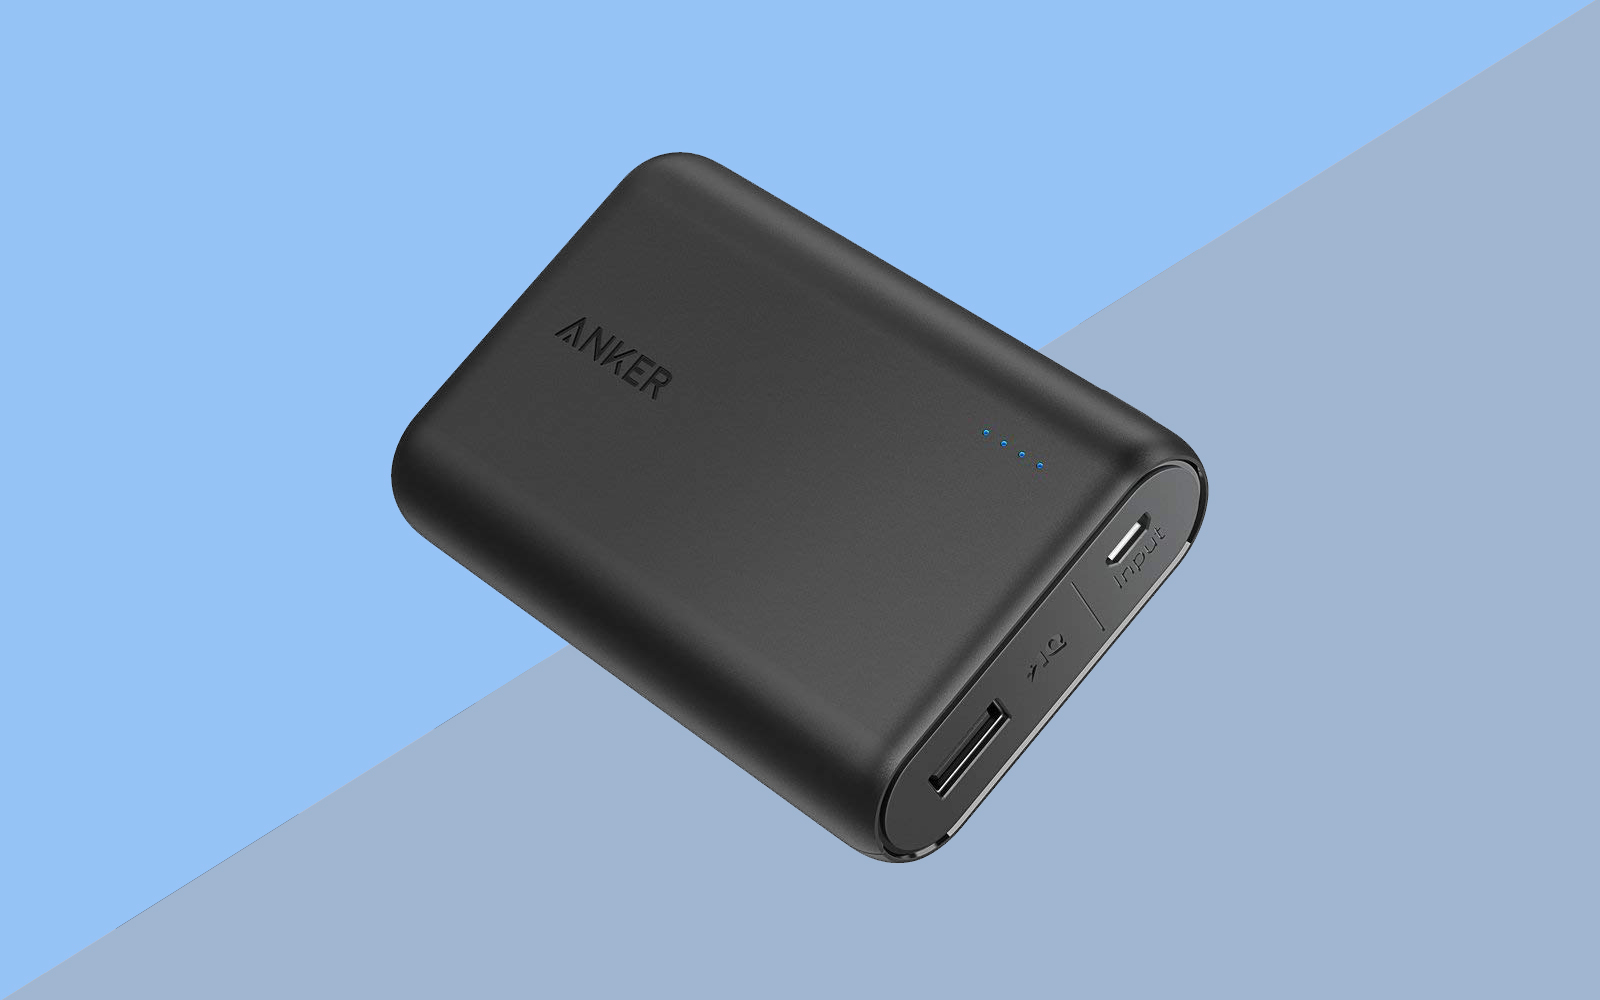 Amazon Anker Portable Charger